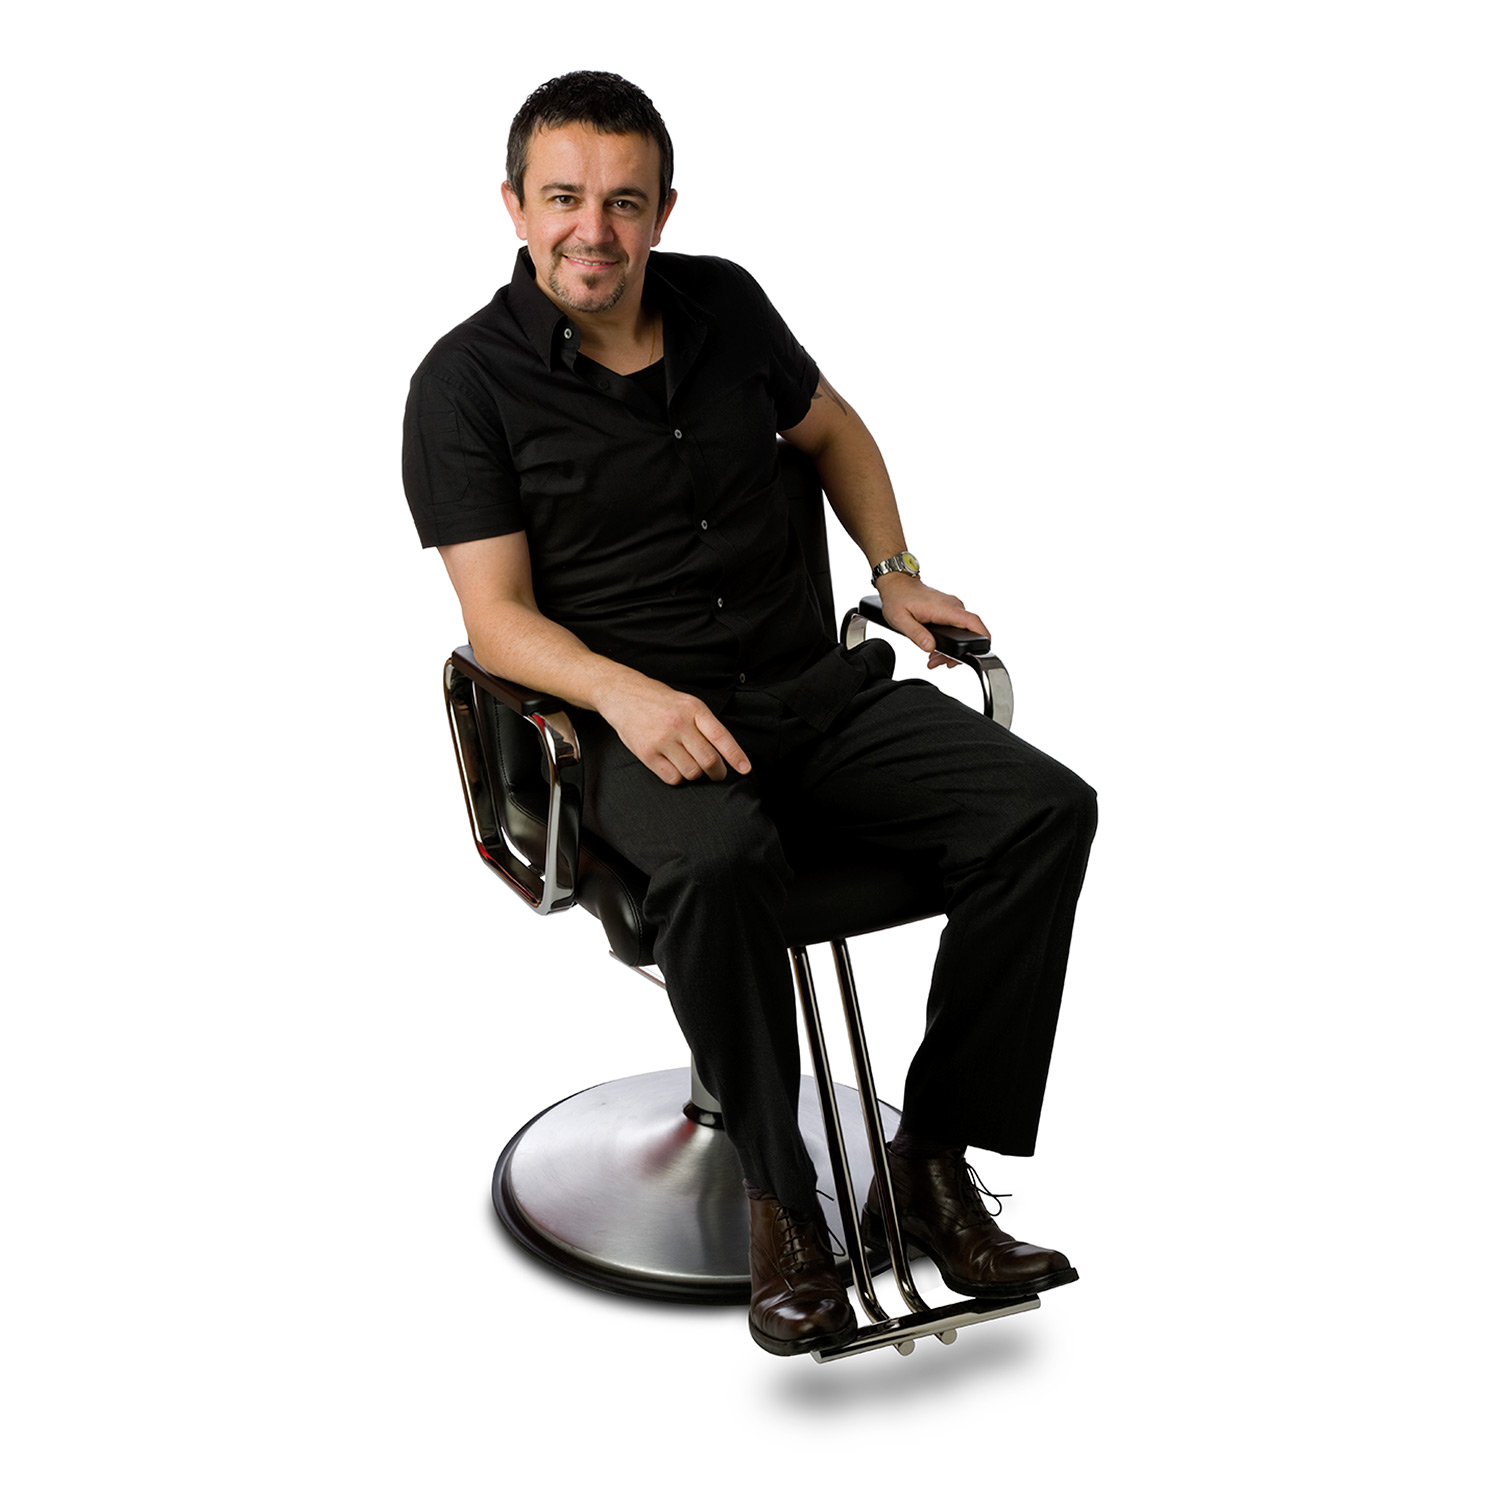 Belvedere Arrojo Hair Salon Chair alternative product image 1